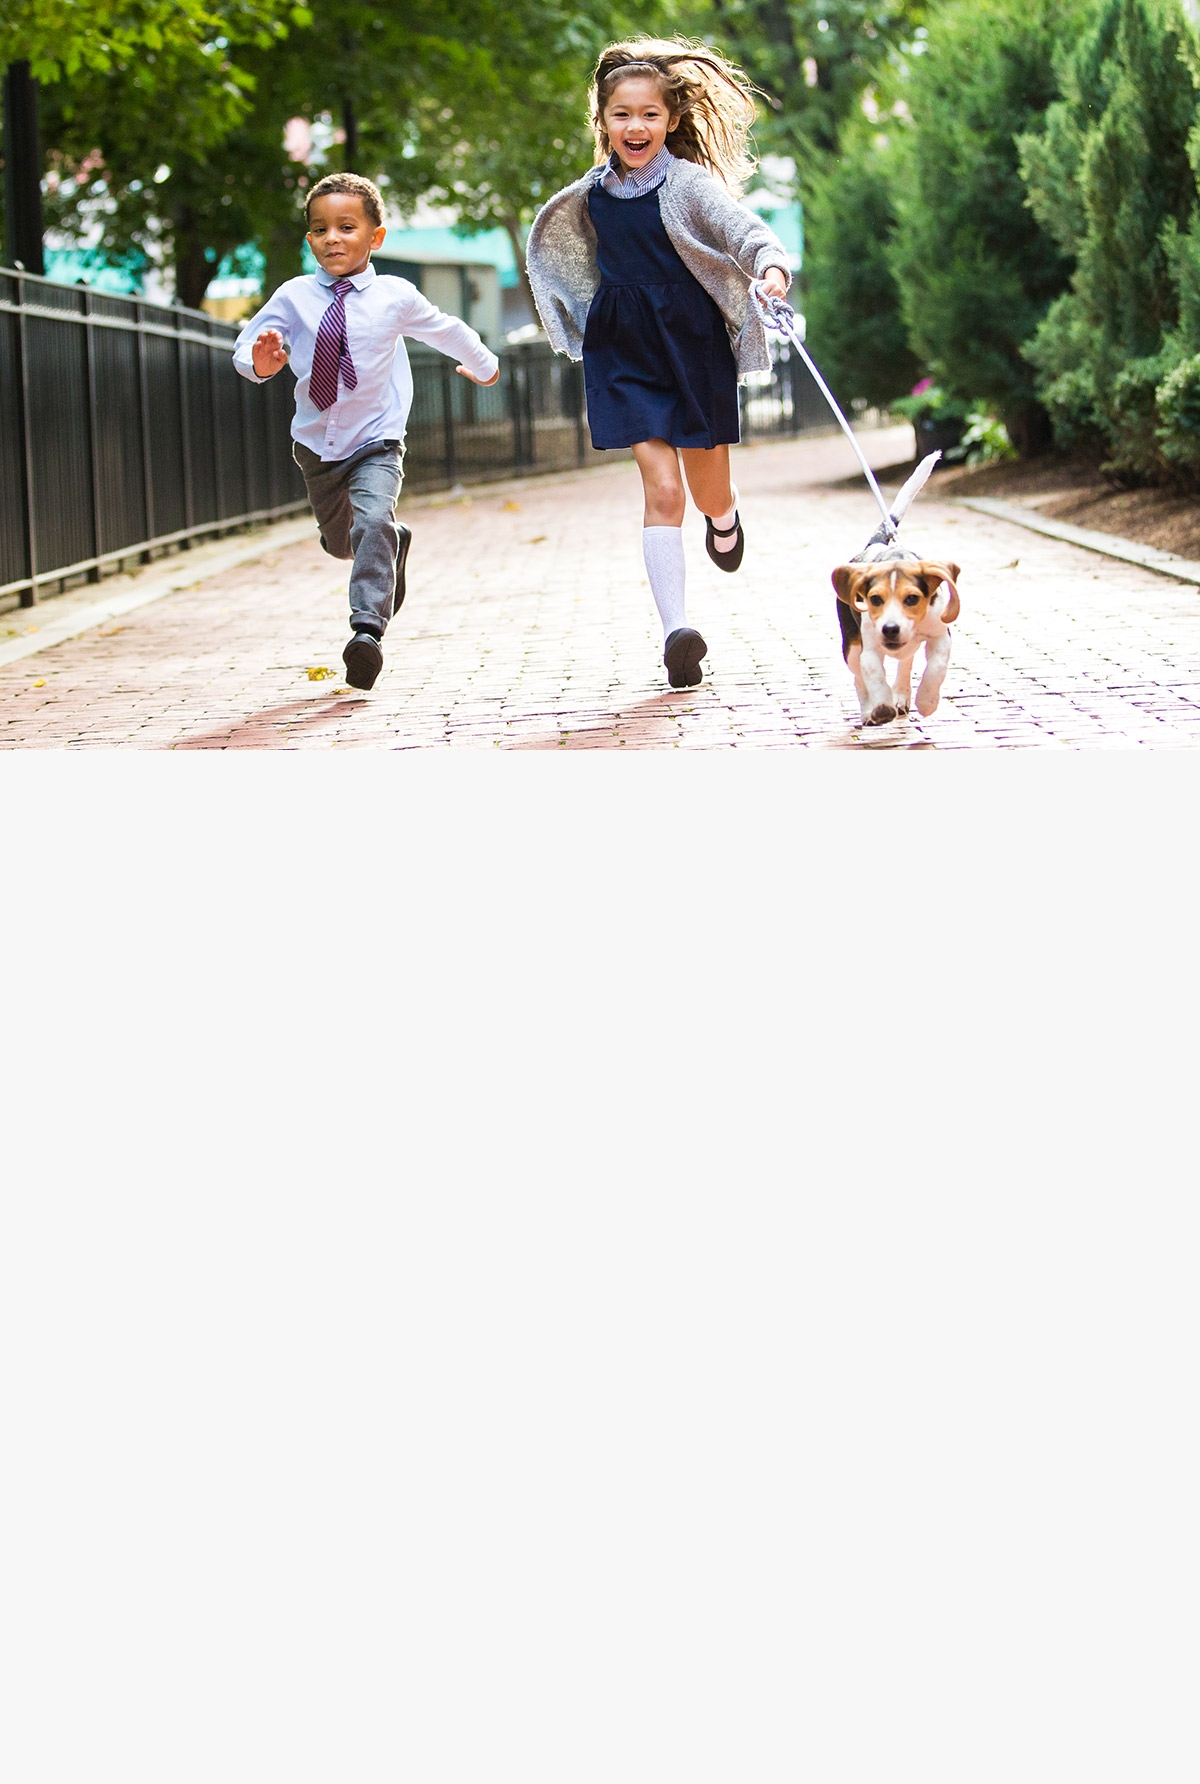 A boy, a girl and a dog are running.